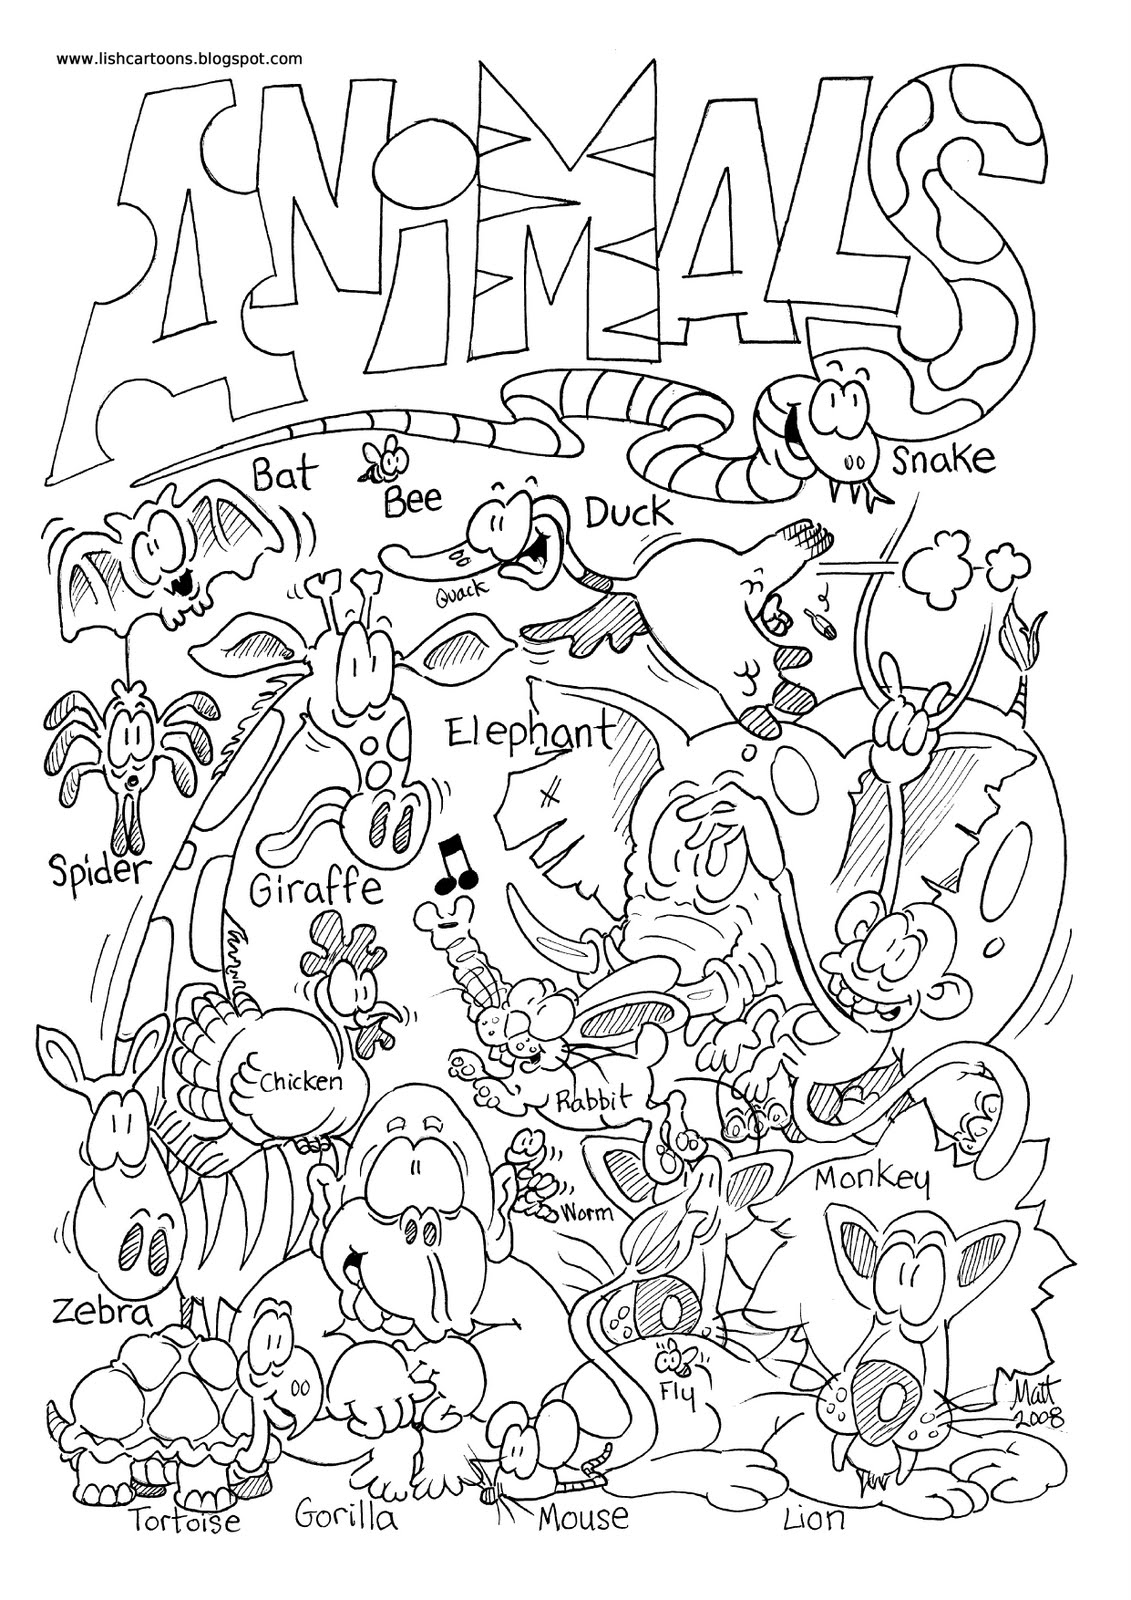 zoo animals coloring pictures beautifull wild animal coloring pages image zoo animal coloring pictures animals zoo